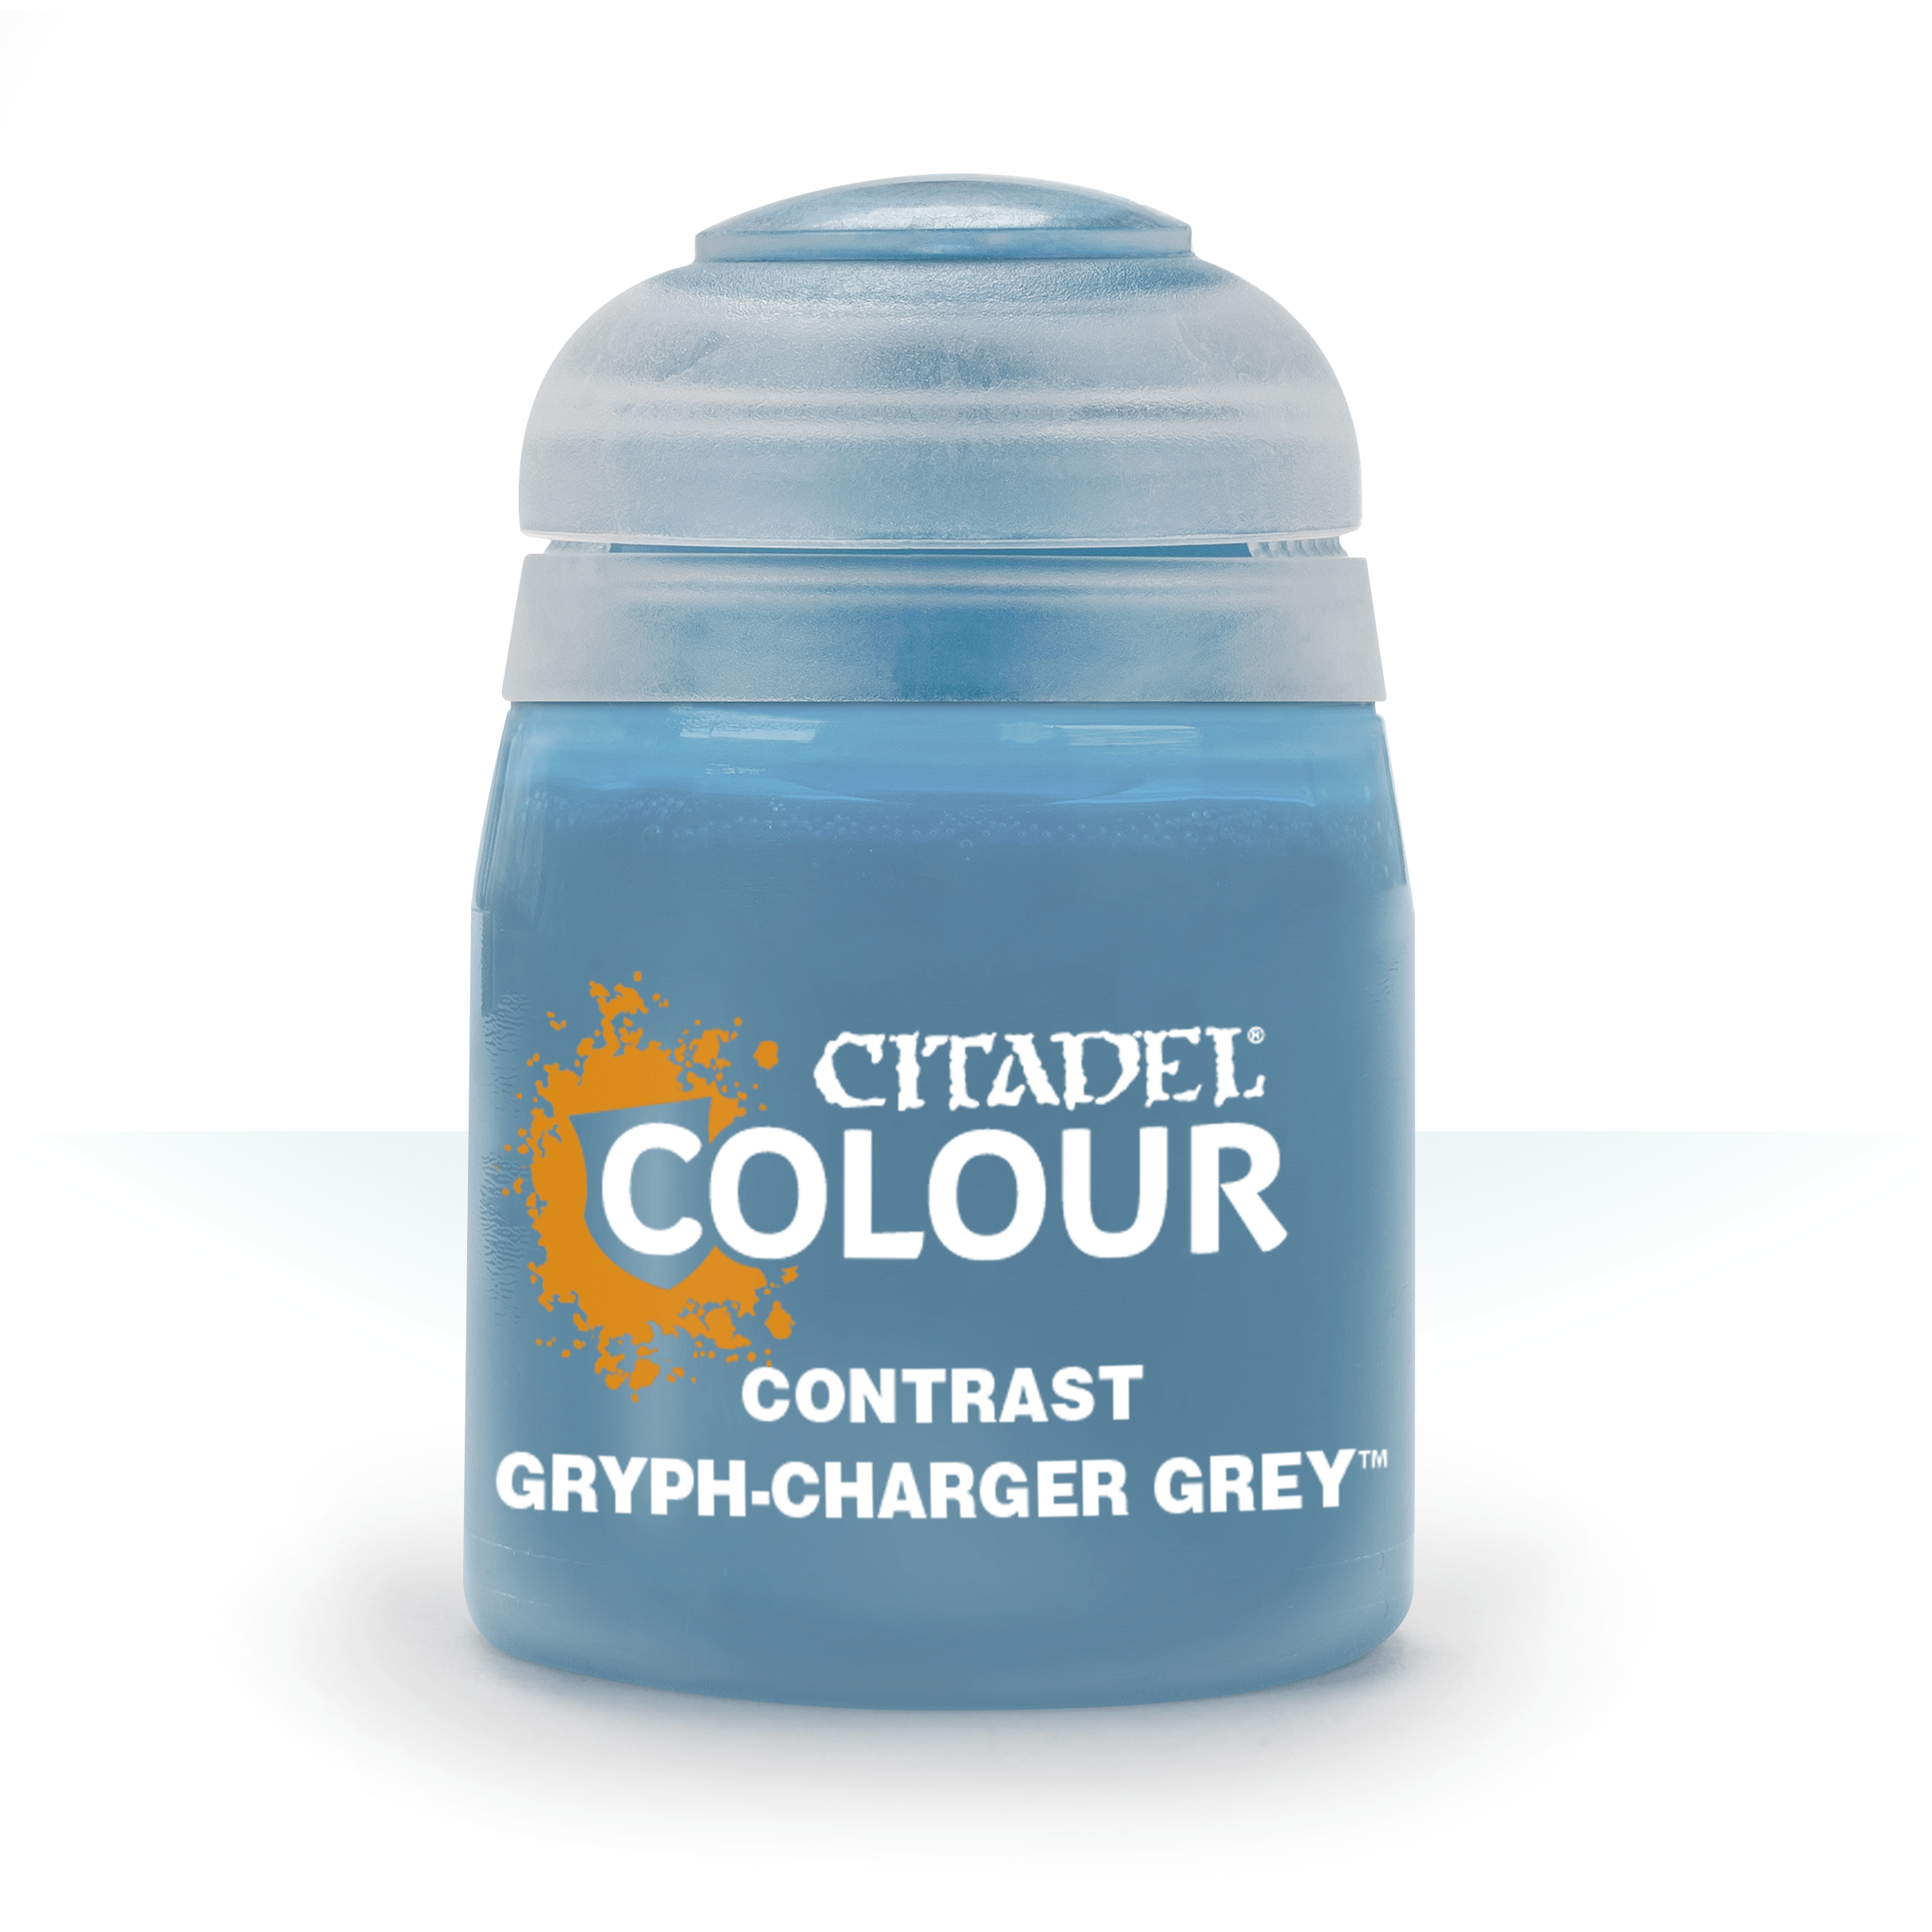 Gryph-Charger Grey, Citadel Contrast 18ml